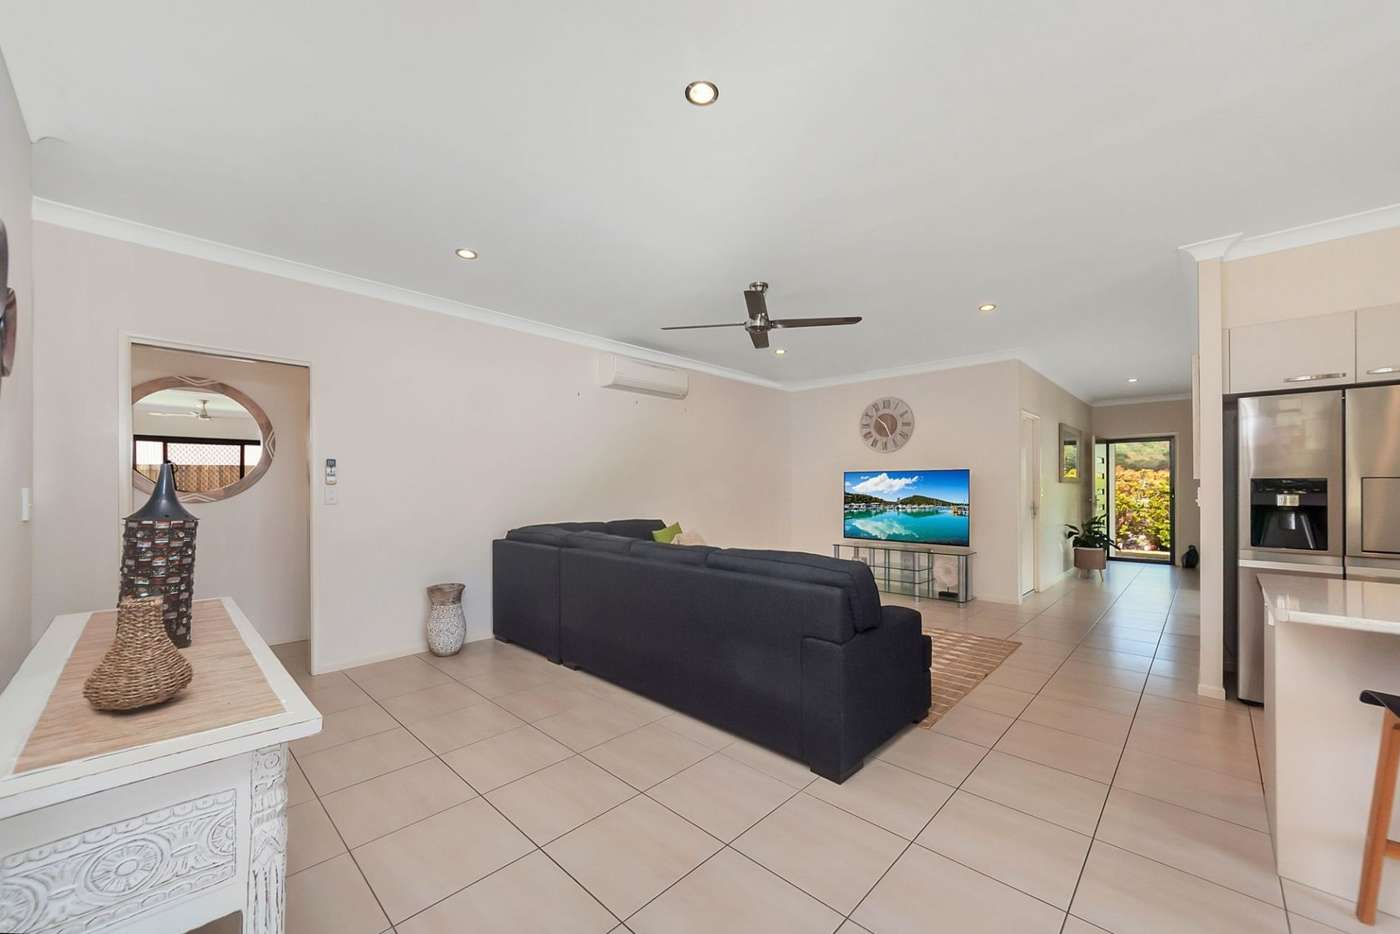 Sixth view of Homely house listing, 11 Willoughby Close, Redlynch QLD 4870